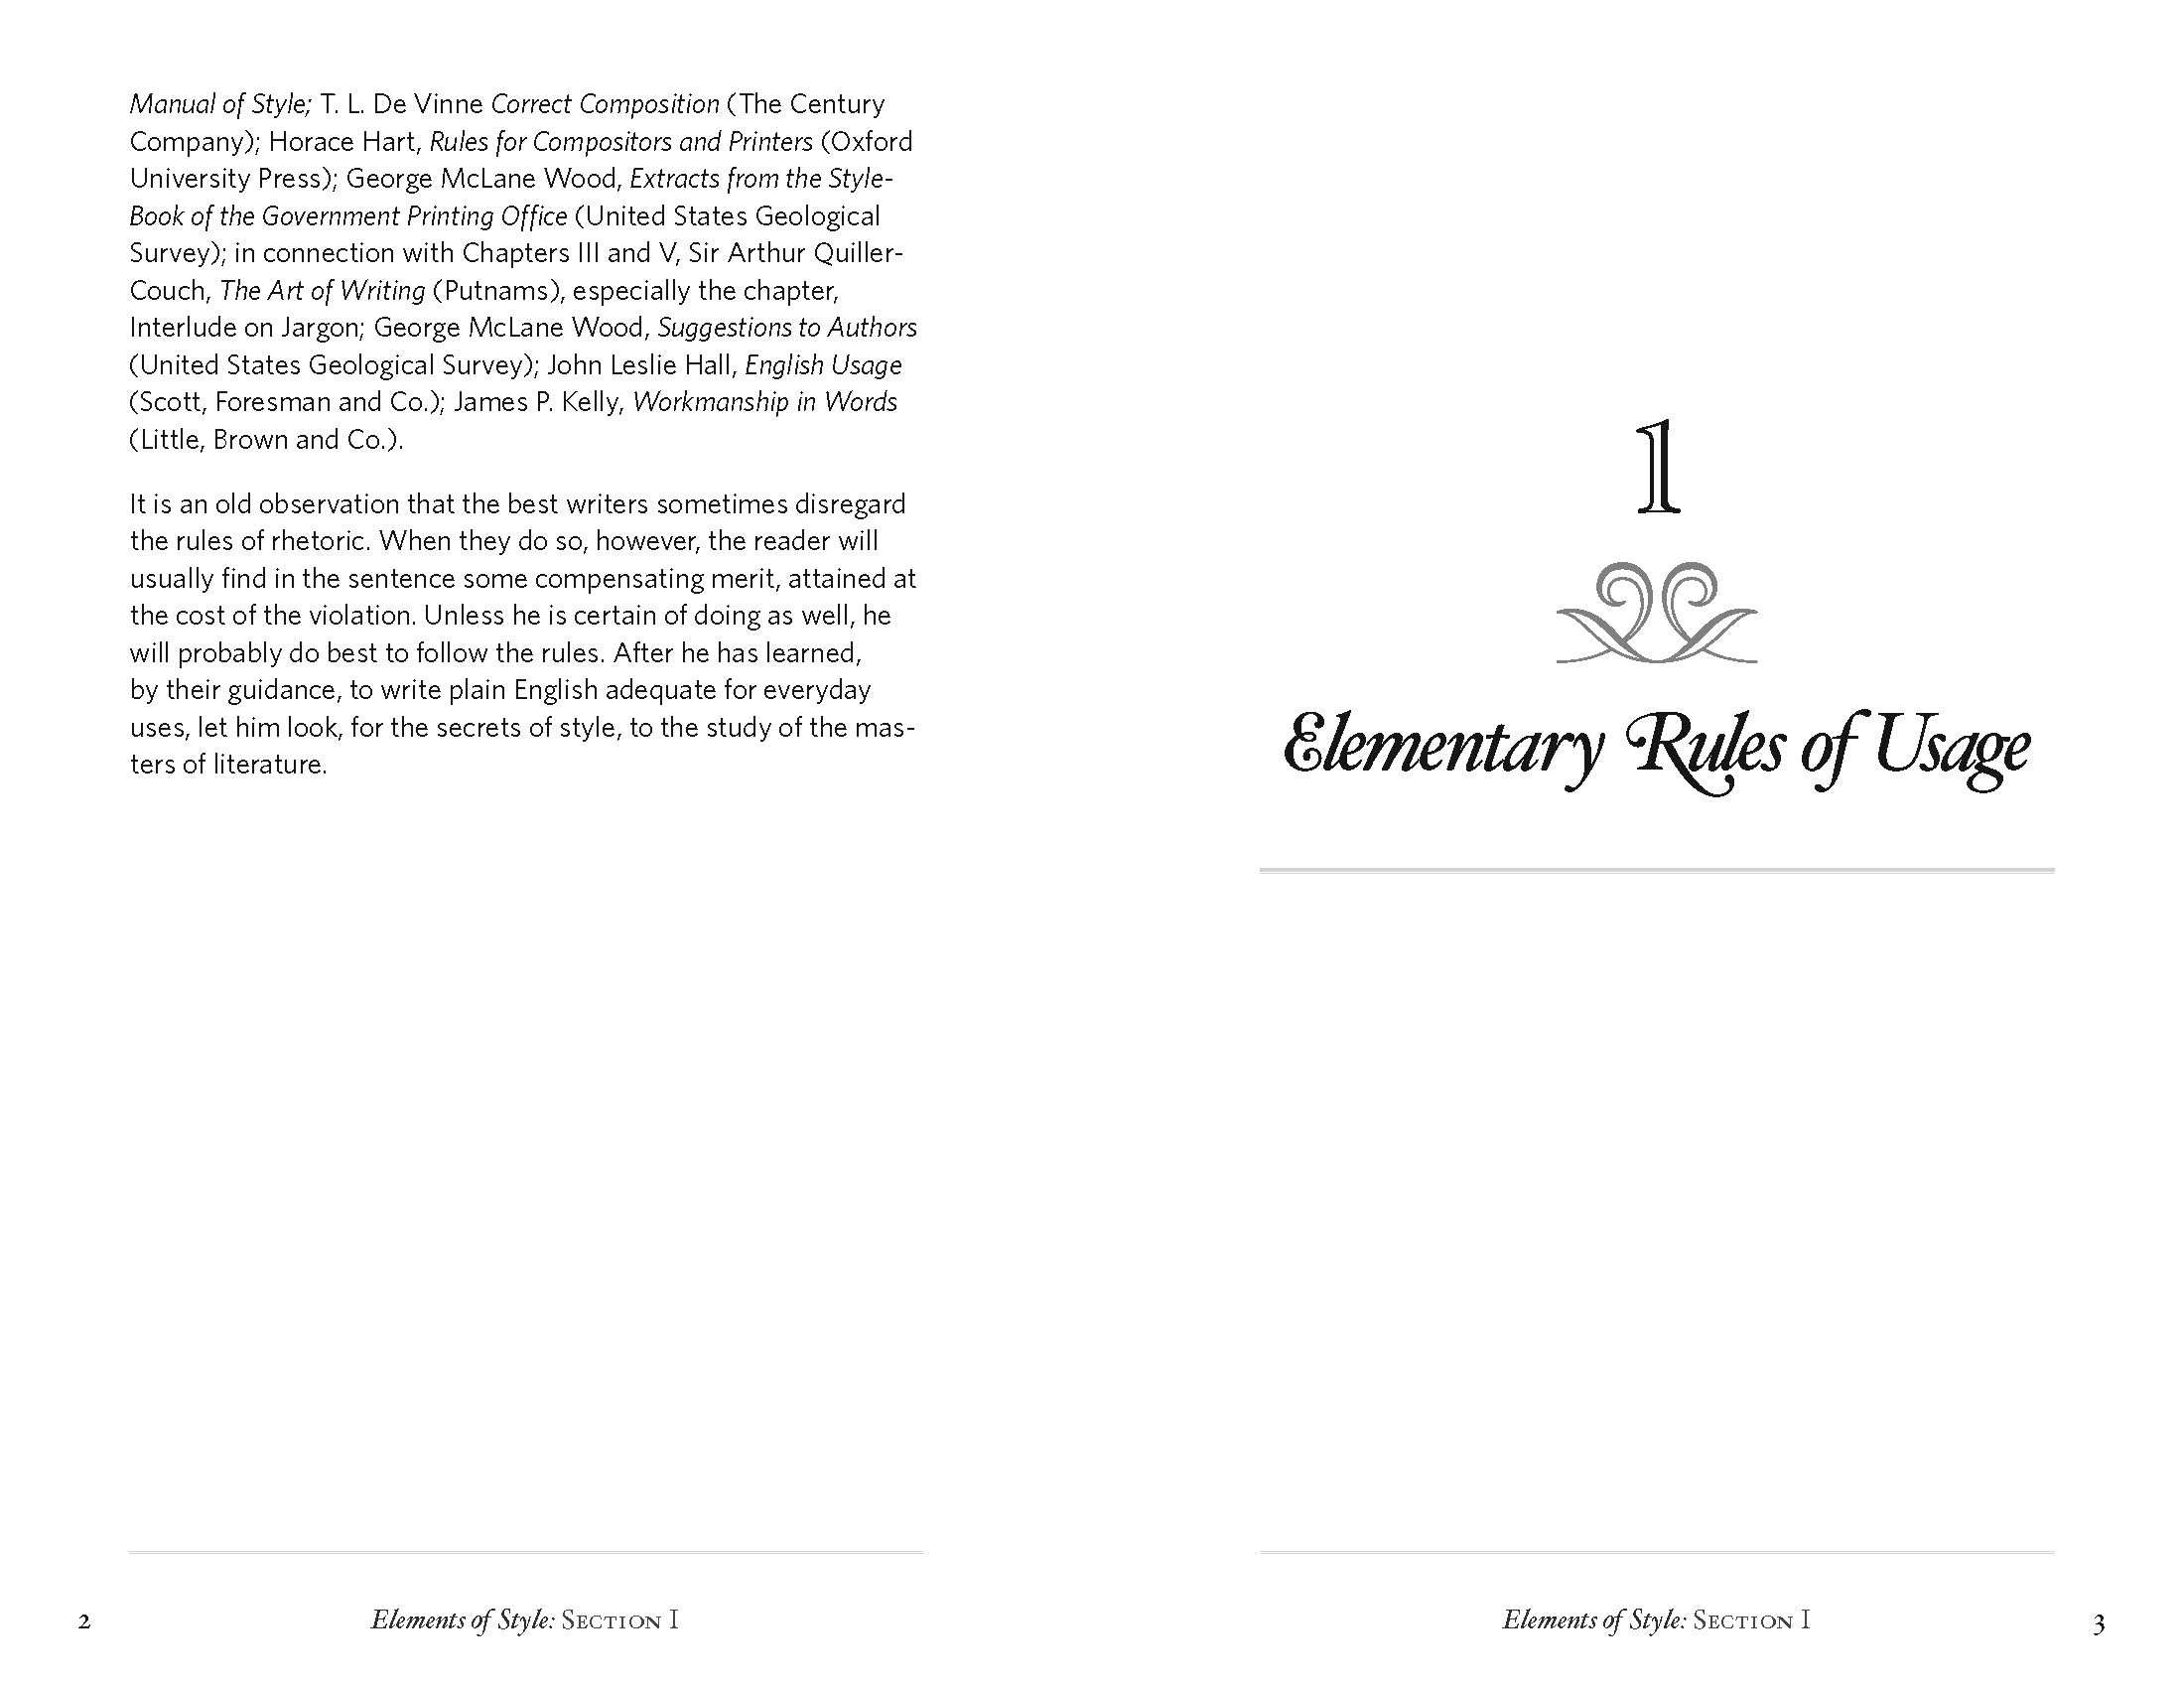 elements_of_style_section_1_v5_Page_03.jpg